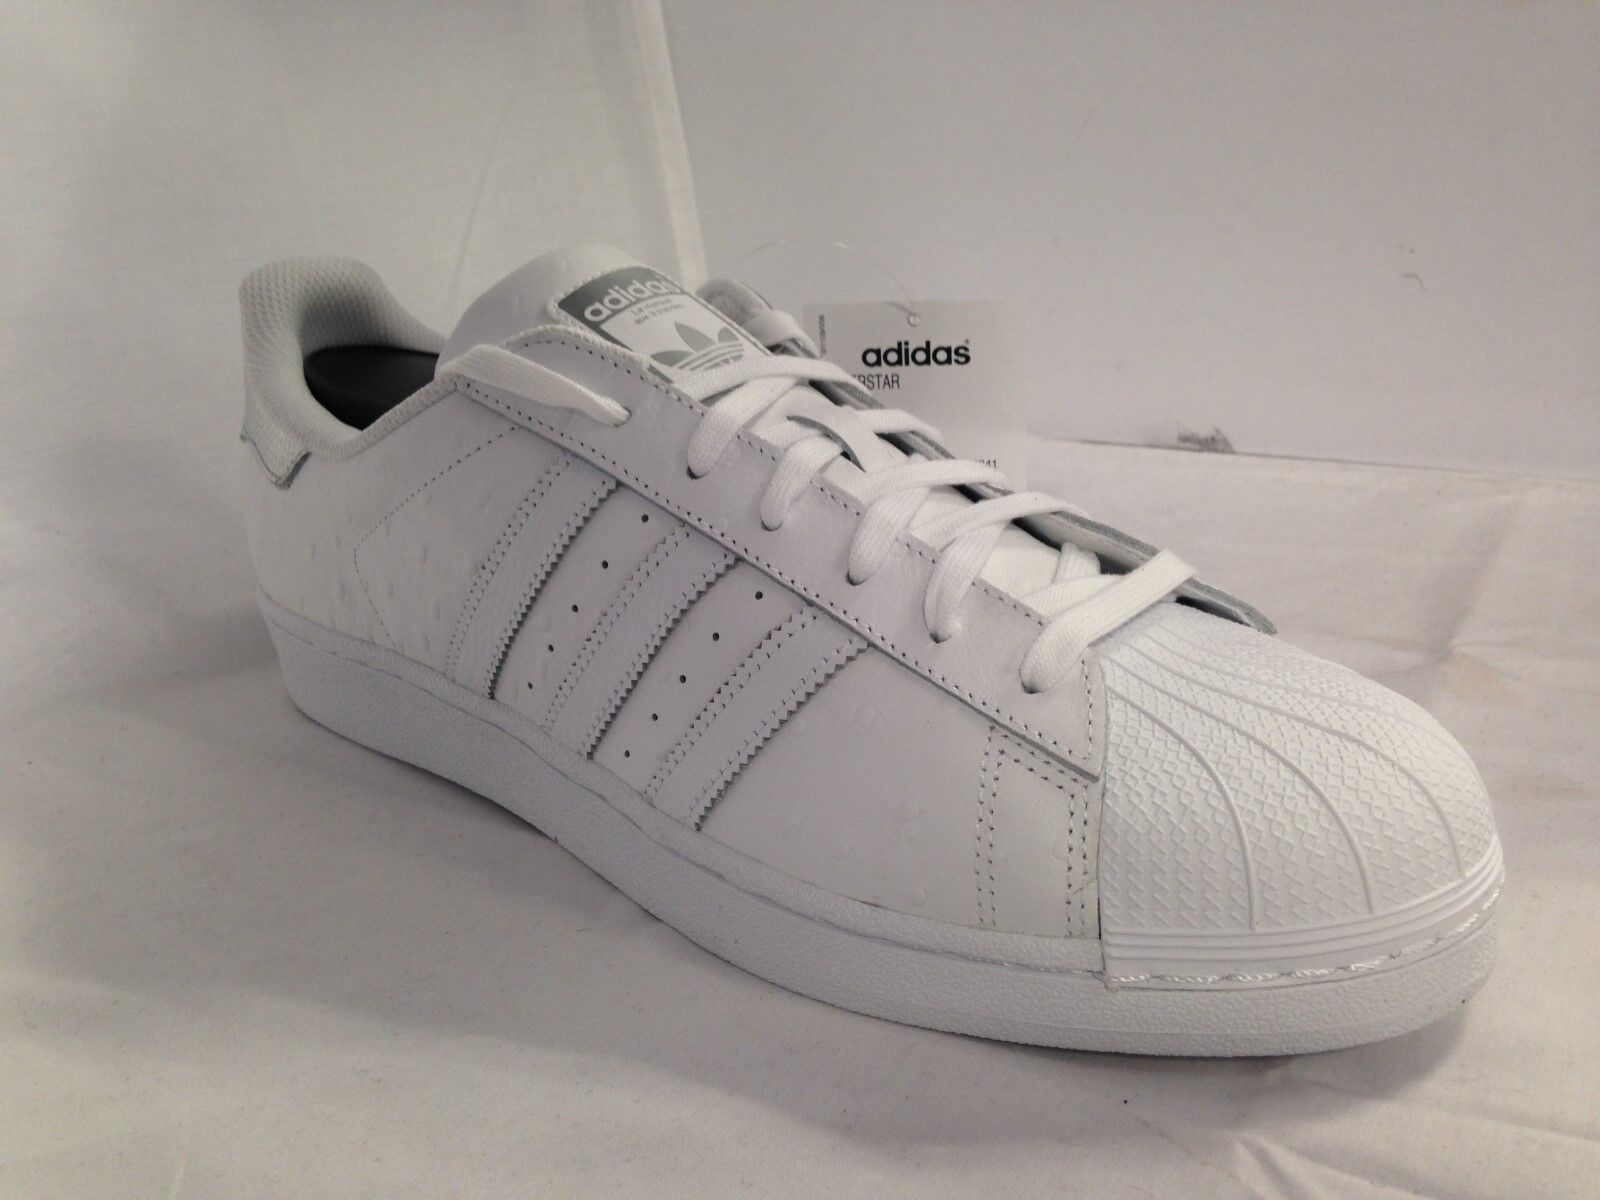 Blanc adidas superstar Blanc   / Argent  s80341 taille: 53f7a4